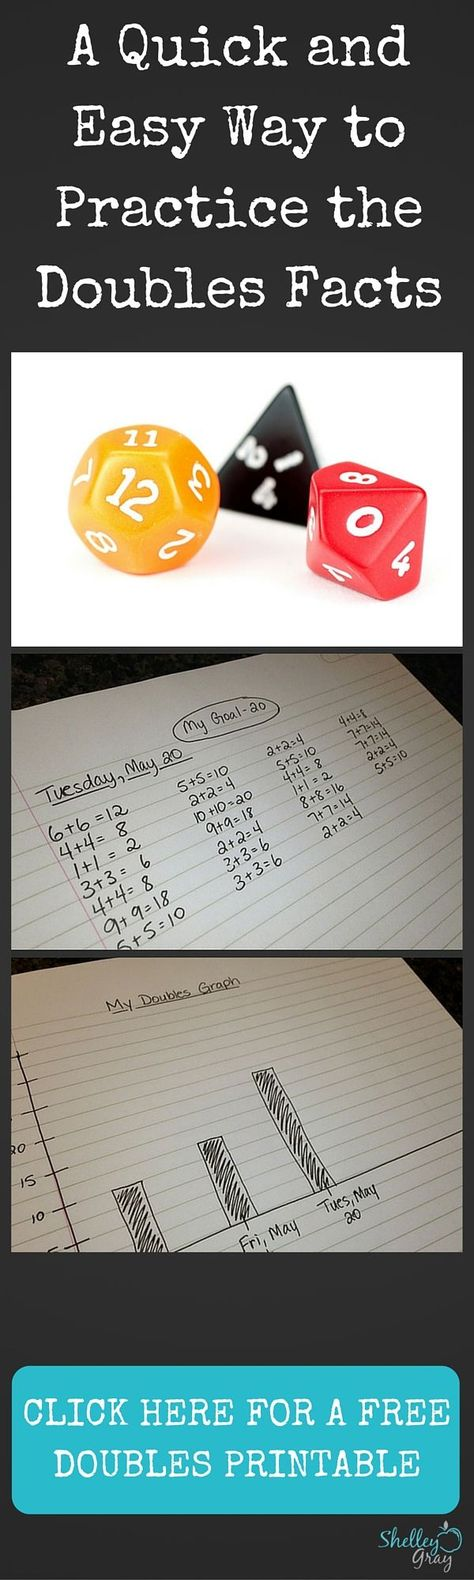 It is essential that students know their doubles facts. When students develop automaticity with their doubles, it paves the way for other mental math strategies, such as Doubles Plus One or Near Doubles. In order to develop automaticity, students need lots and lots of practice. Click for full instructions and for a FREE doubles printable.